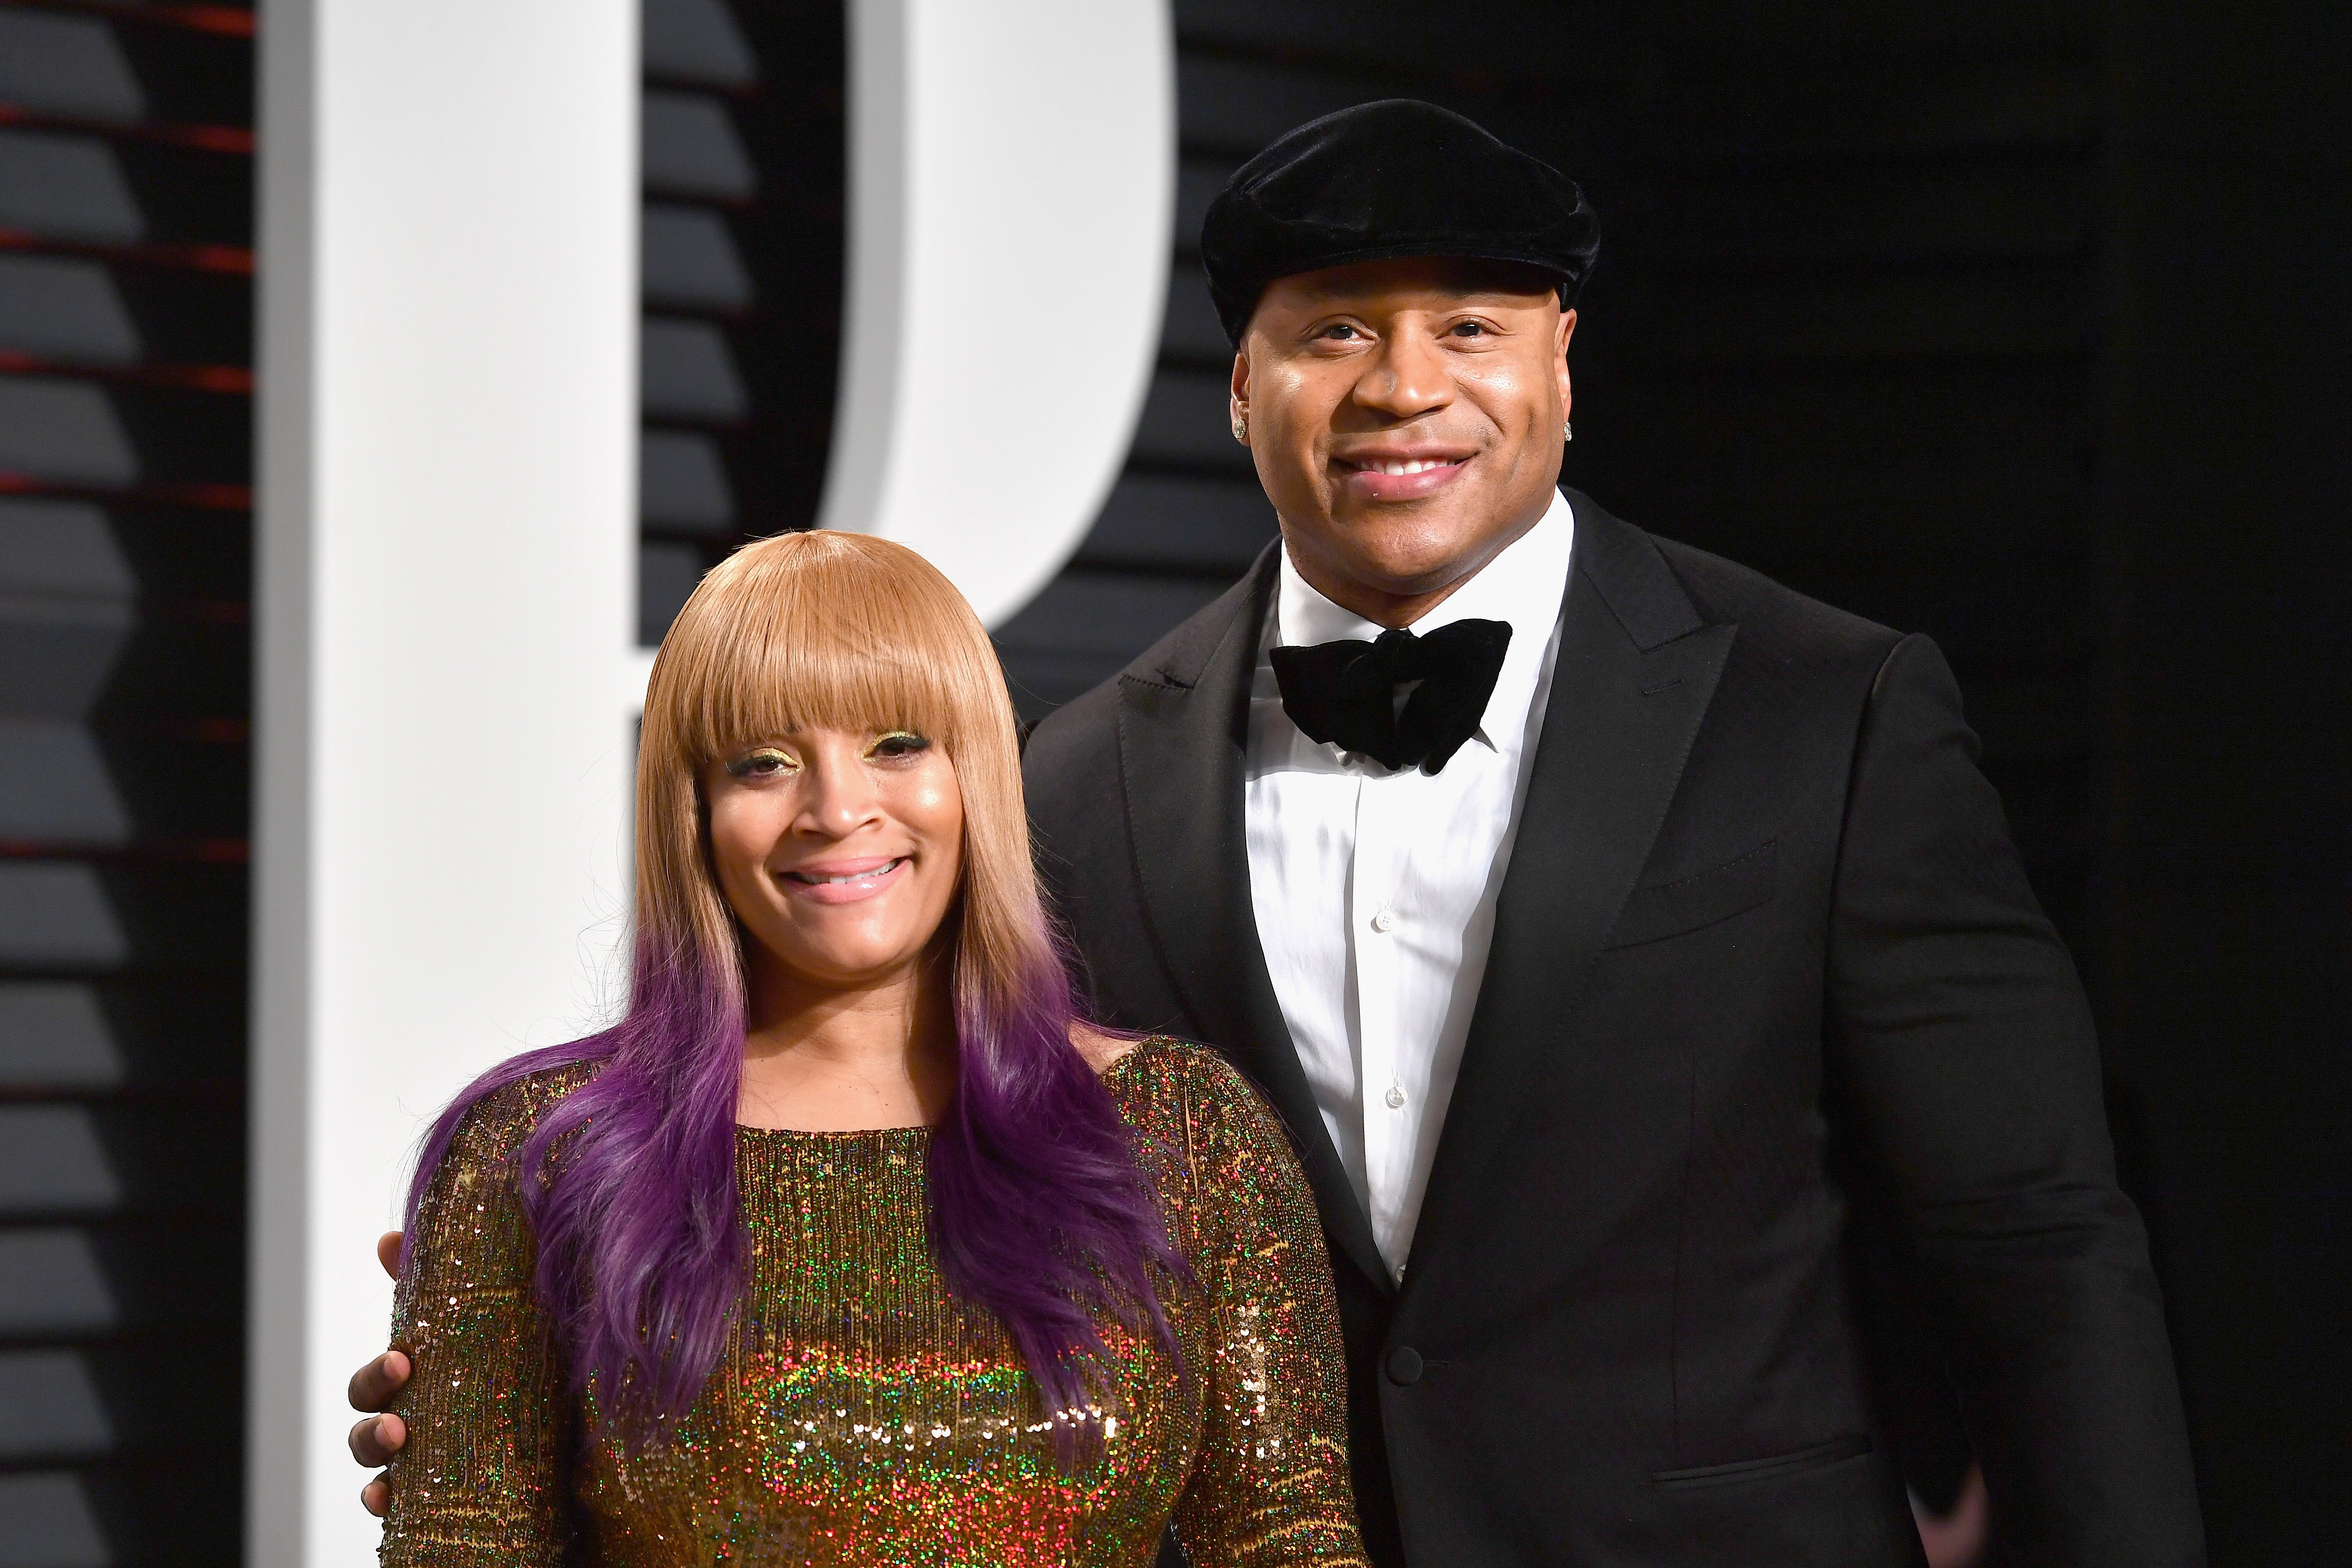 Simone Smith and LL Cool J attend the 2017 Vanity Fair Oscar Party at Wallis Annenberg Center for the Performing Arts on February 26, 2017. | Photo: Getty Images